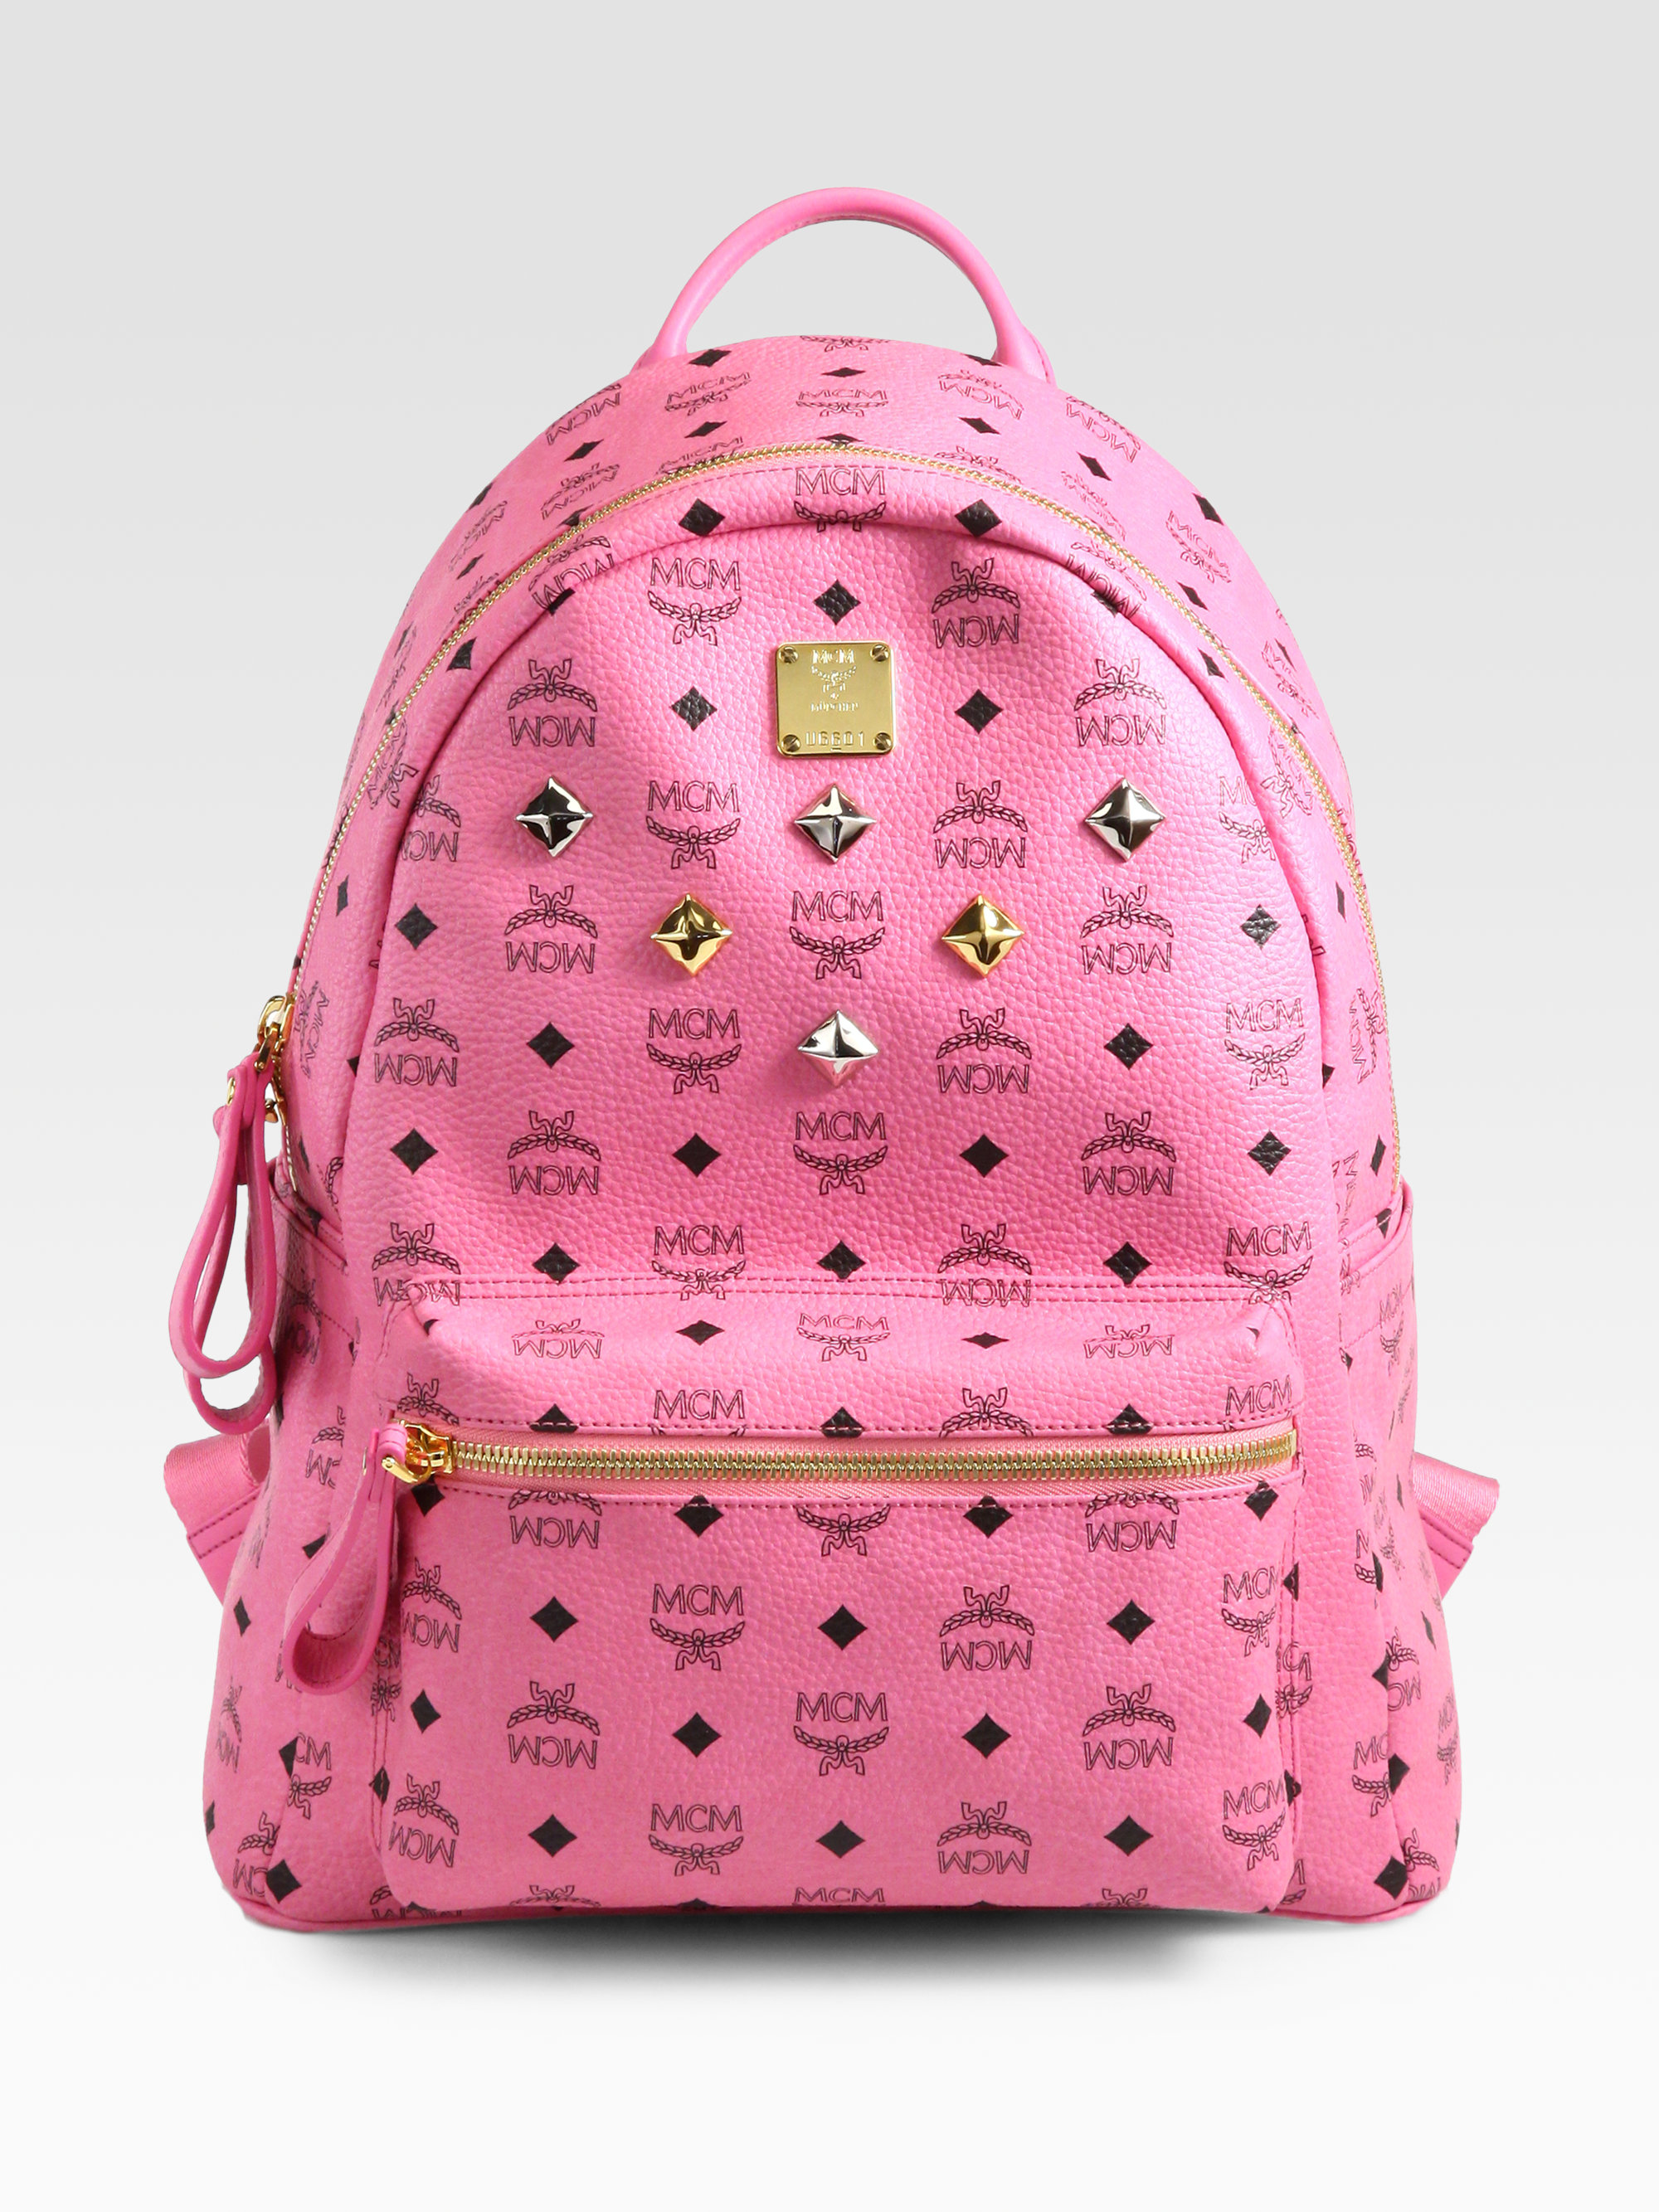 Mcm Stark Sprinkle Stud Medium Coated Canvas Backpack in Pink | Lyst